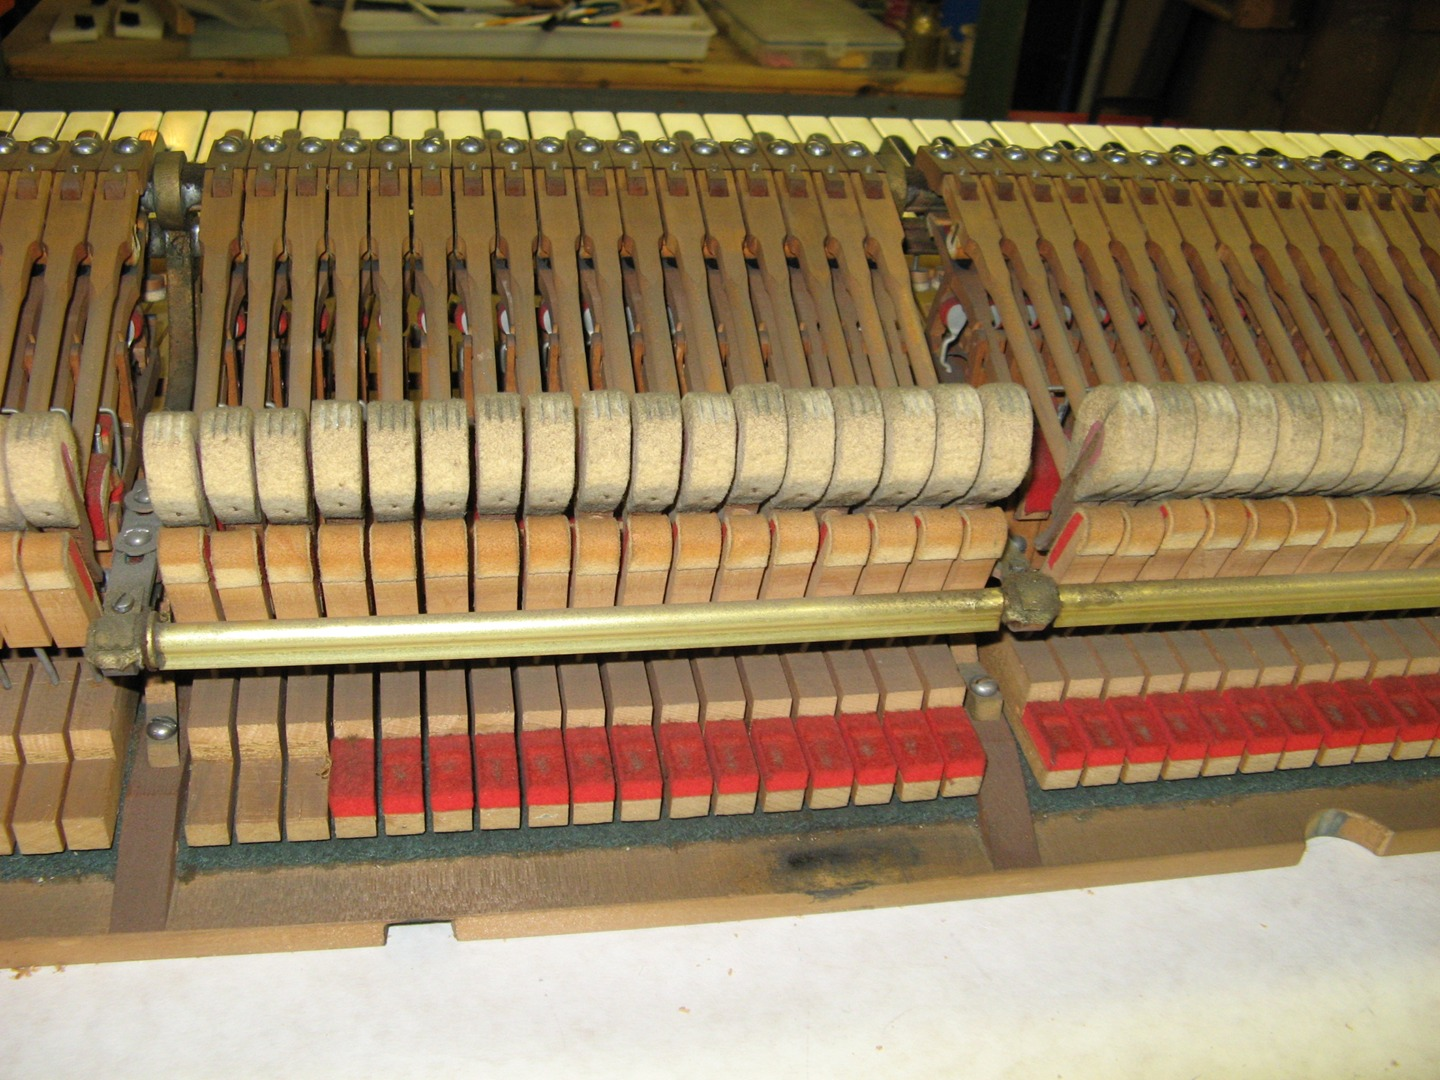 Worn hammers on a grand piano